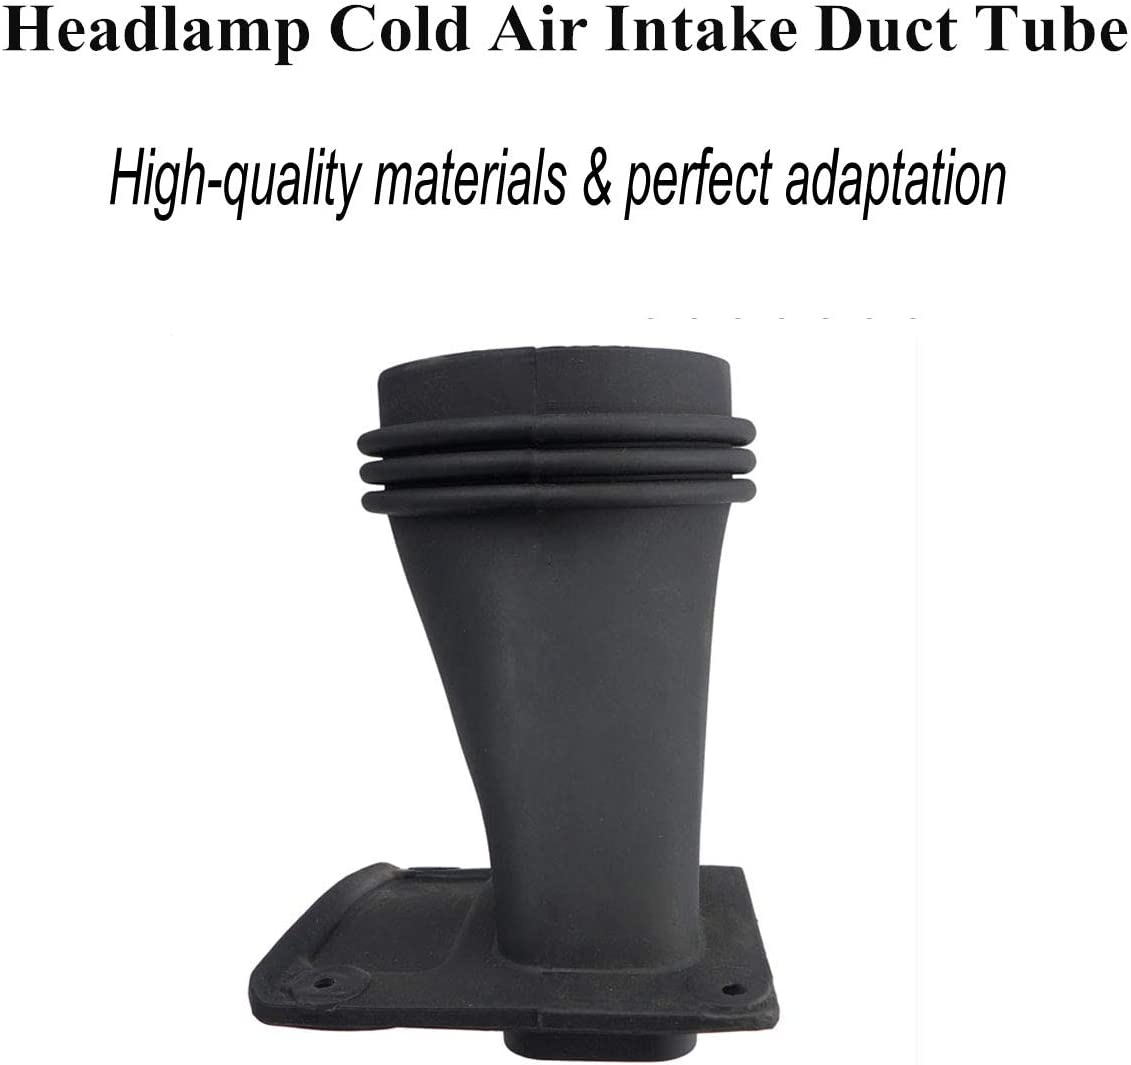 77072385 Headlamp Air Inlet Intake Duct Tube,Fits for Dodge Challenger 2015 2016 2017 2018 2019 2020,Headlamp Tube Provides Horsepower and Torque Gains Under Varying Atmospheric Conditions Black